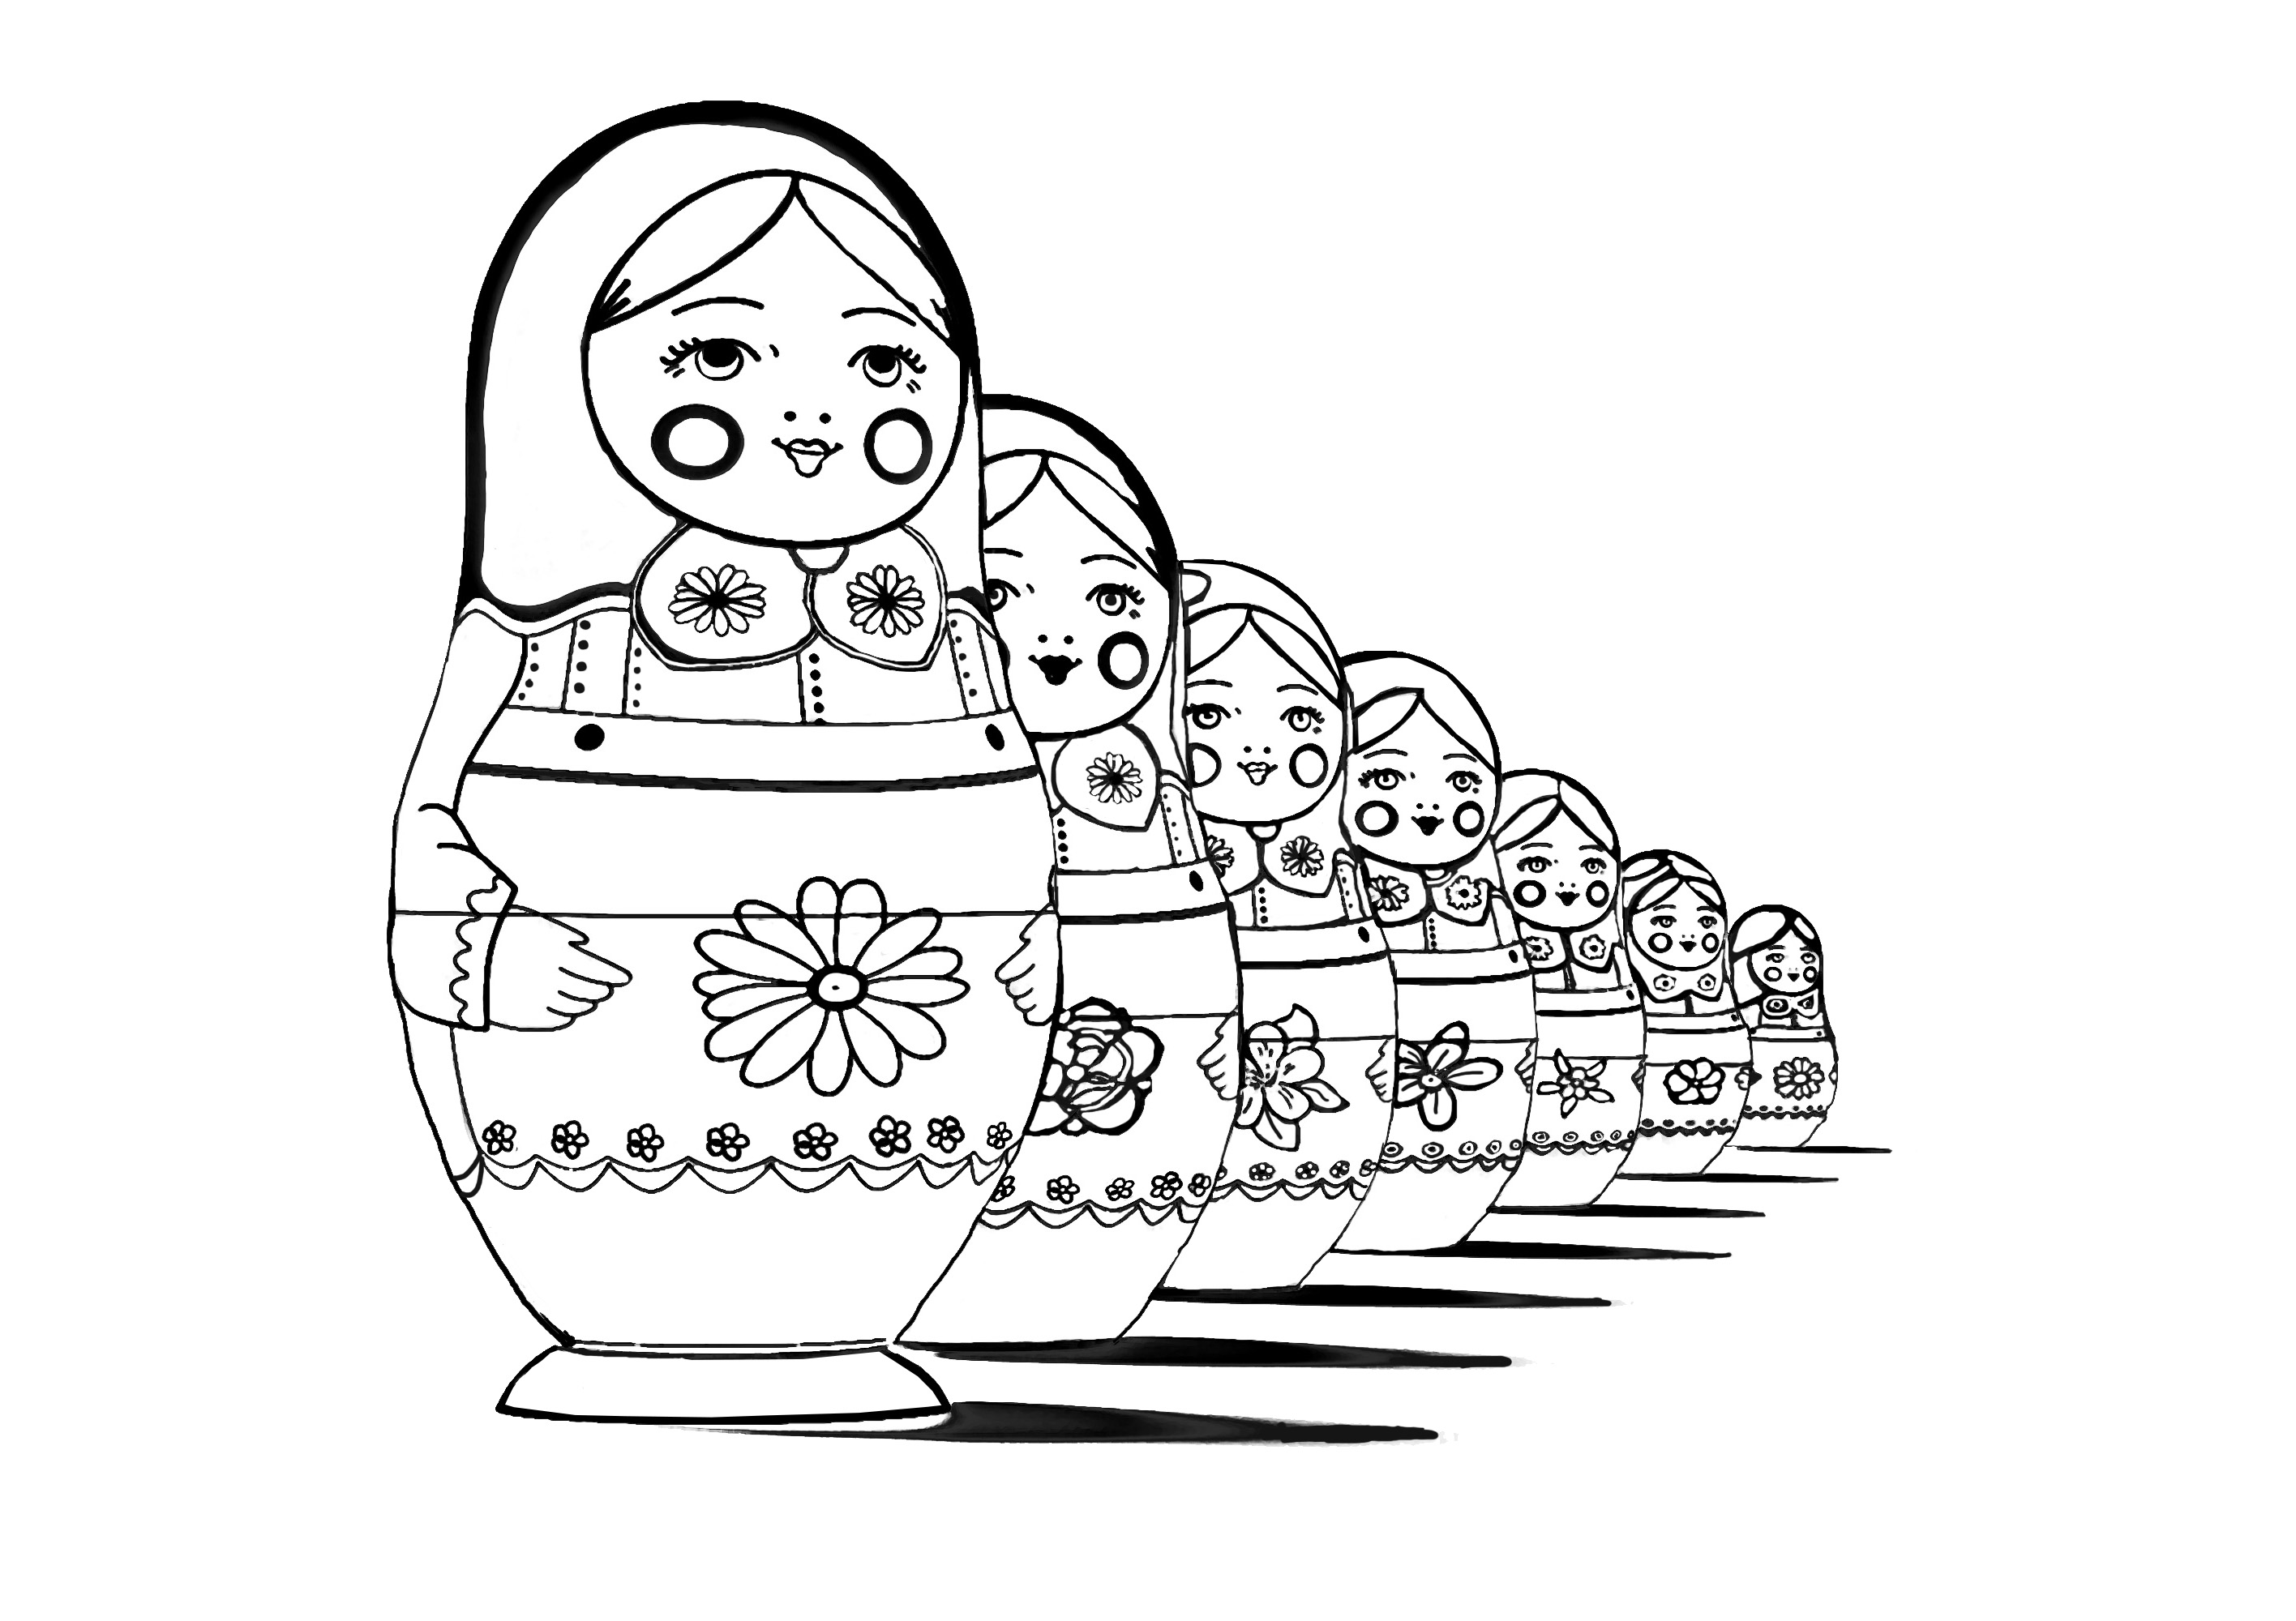 coloring page adult russian dolls perspective russian dolls with perspective effect